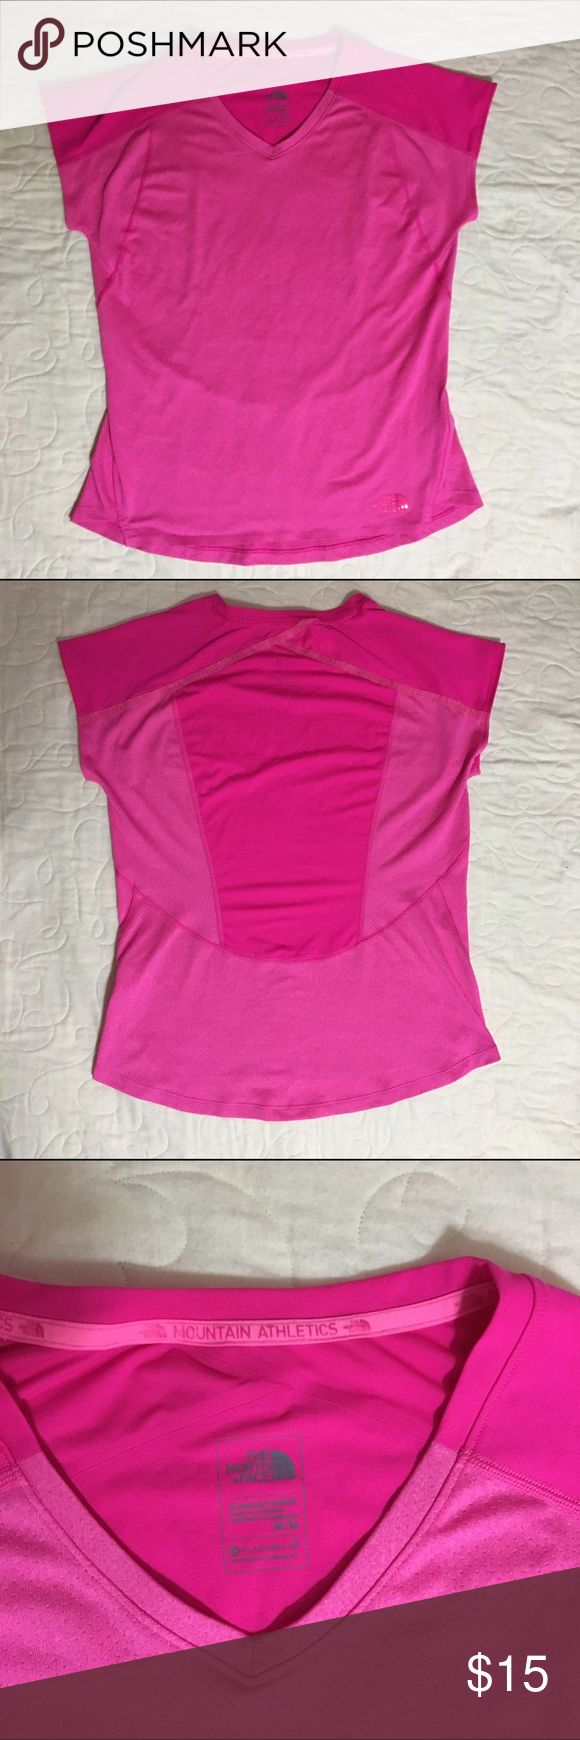 North Face Hot Pink Vented Athletic Top Hot pink north face workout top in great condition. Short sleeved and vented in Medium North Face Tops Tees - Short Sleeve